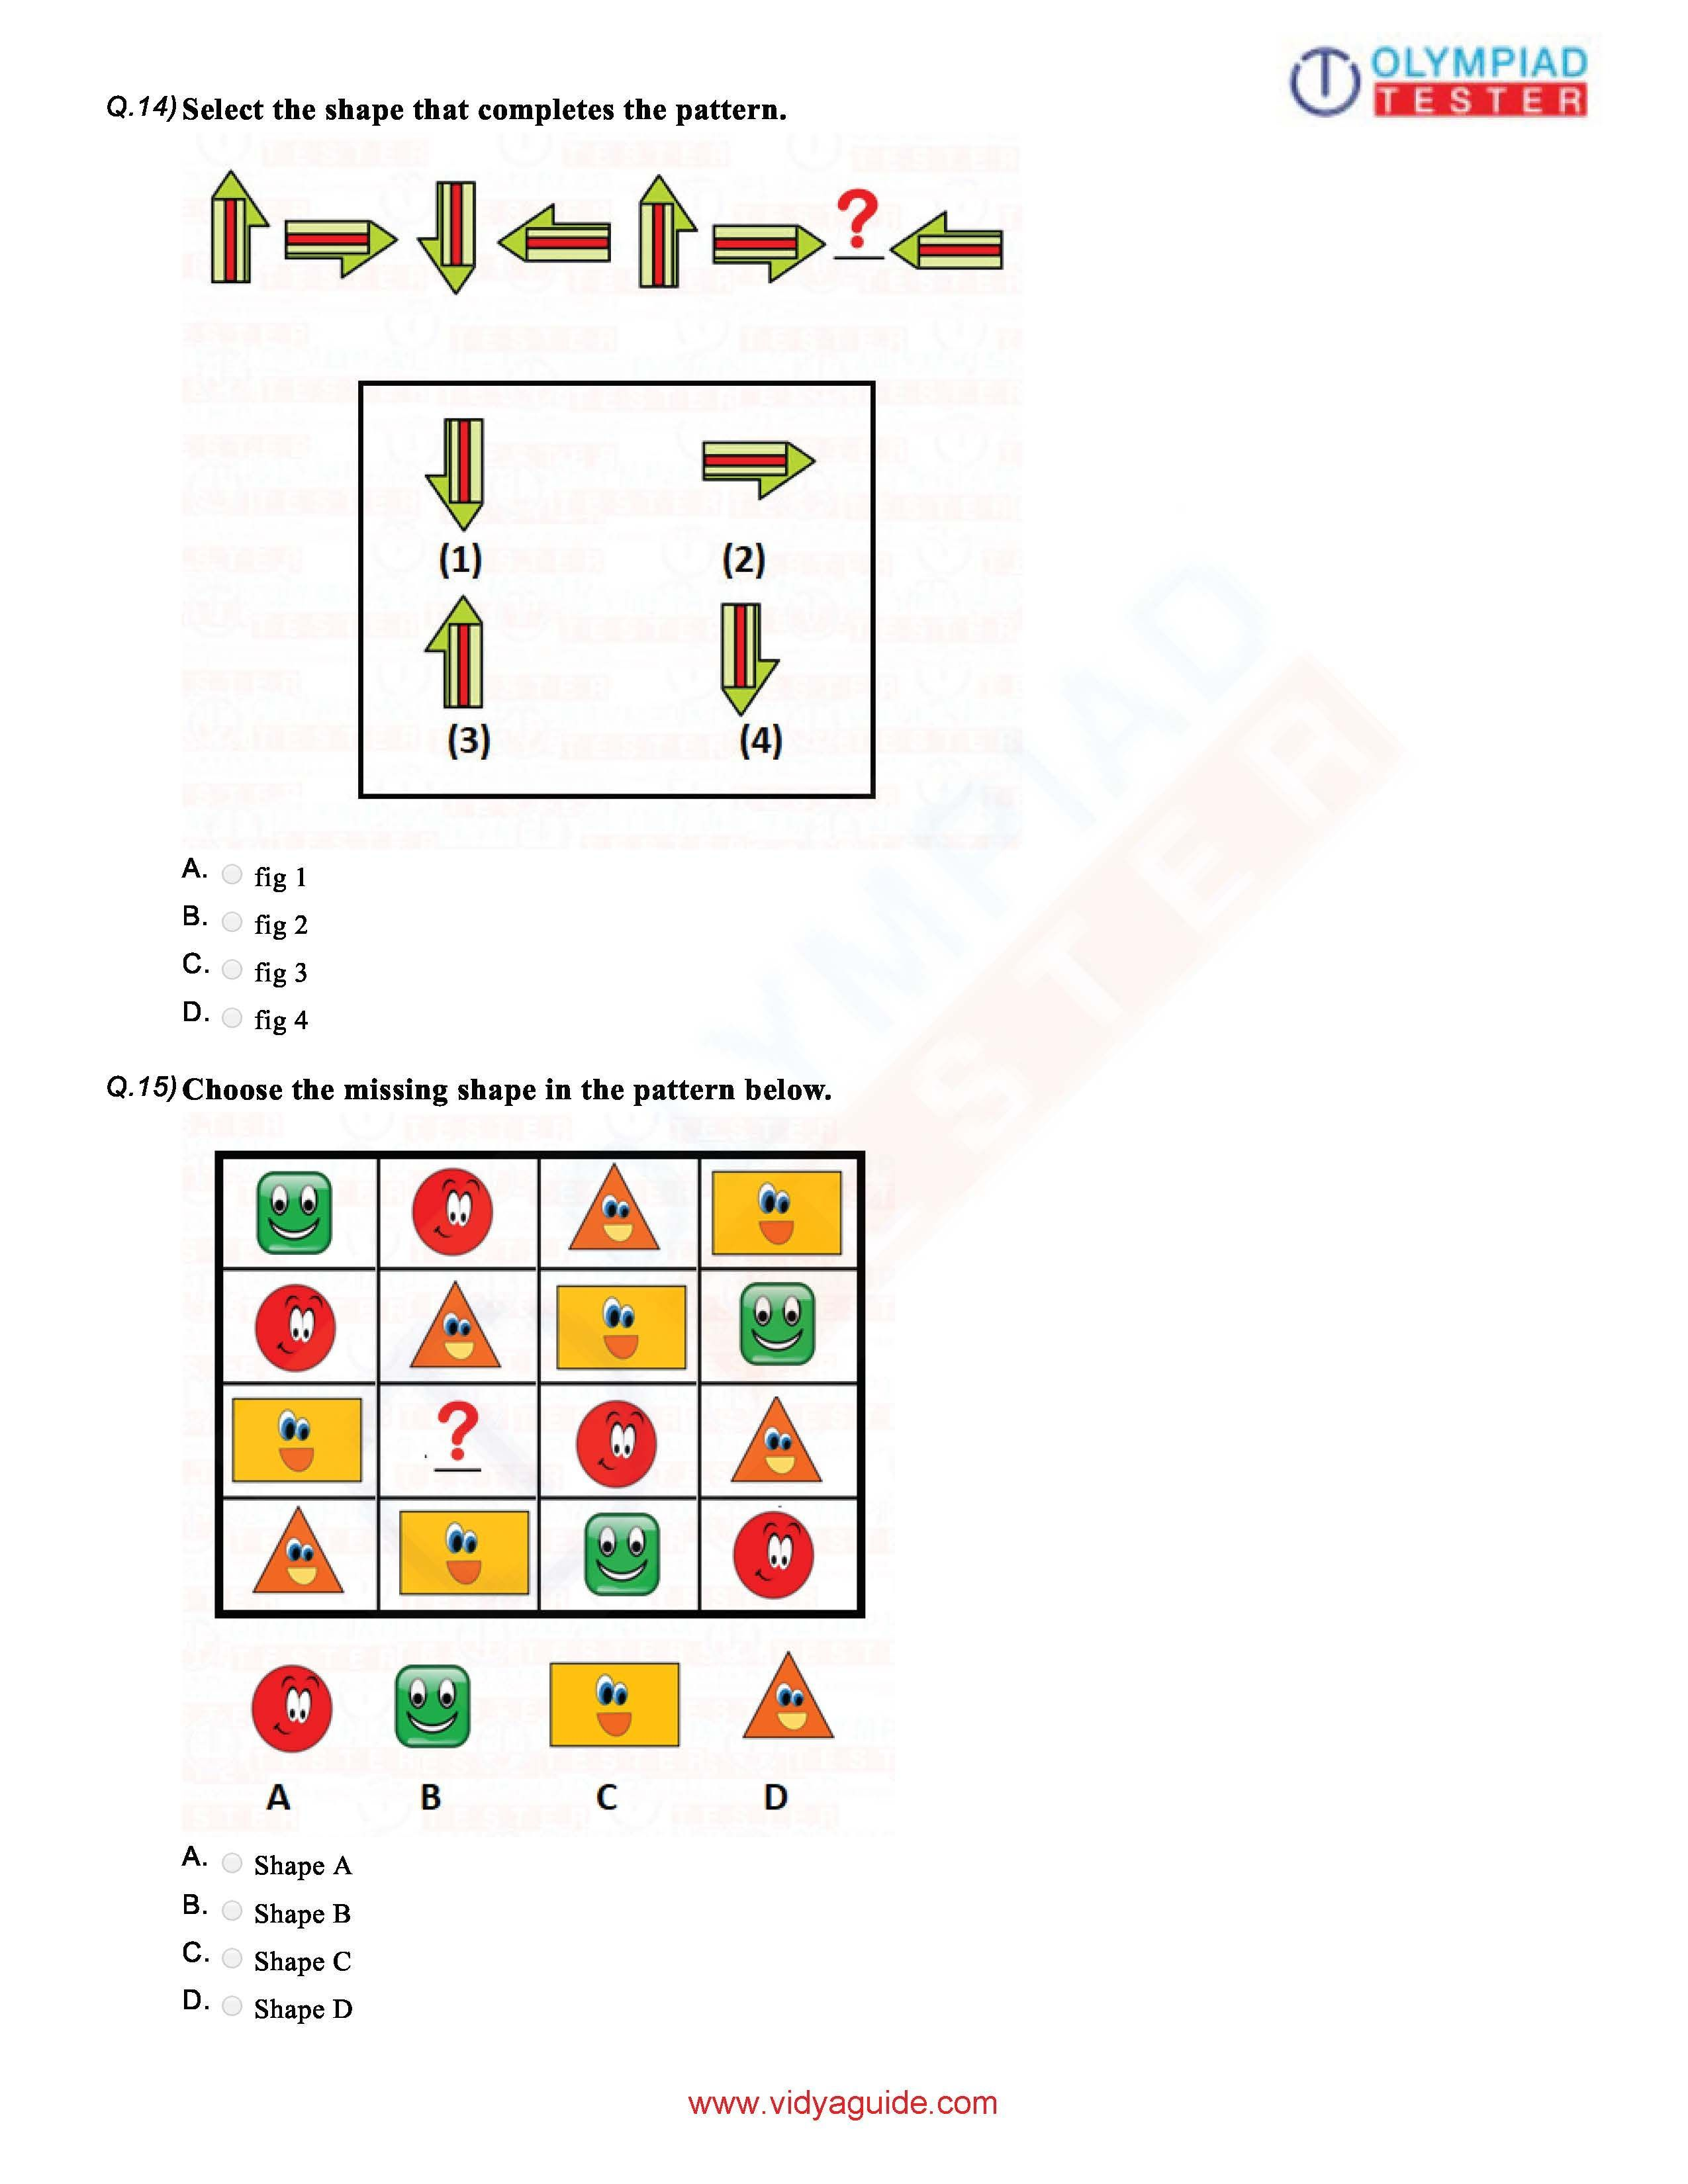 Download Grade 1 Maths Olympiad Sample Papers As Pdf Worksheets On Our Website Class 1 Imo Free Course Of Oly Math Olympiad Class 1 Maths 1st Grade Worksheets